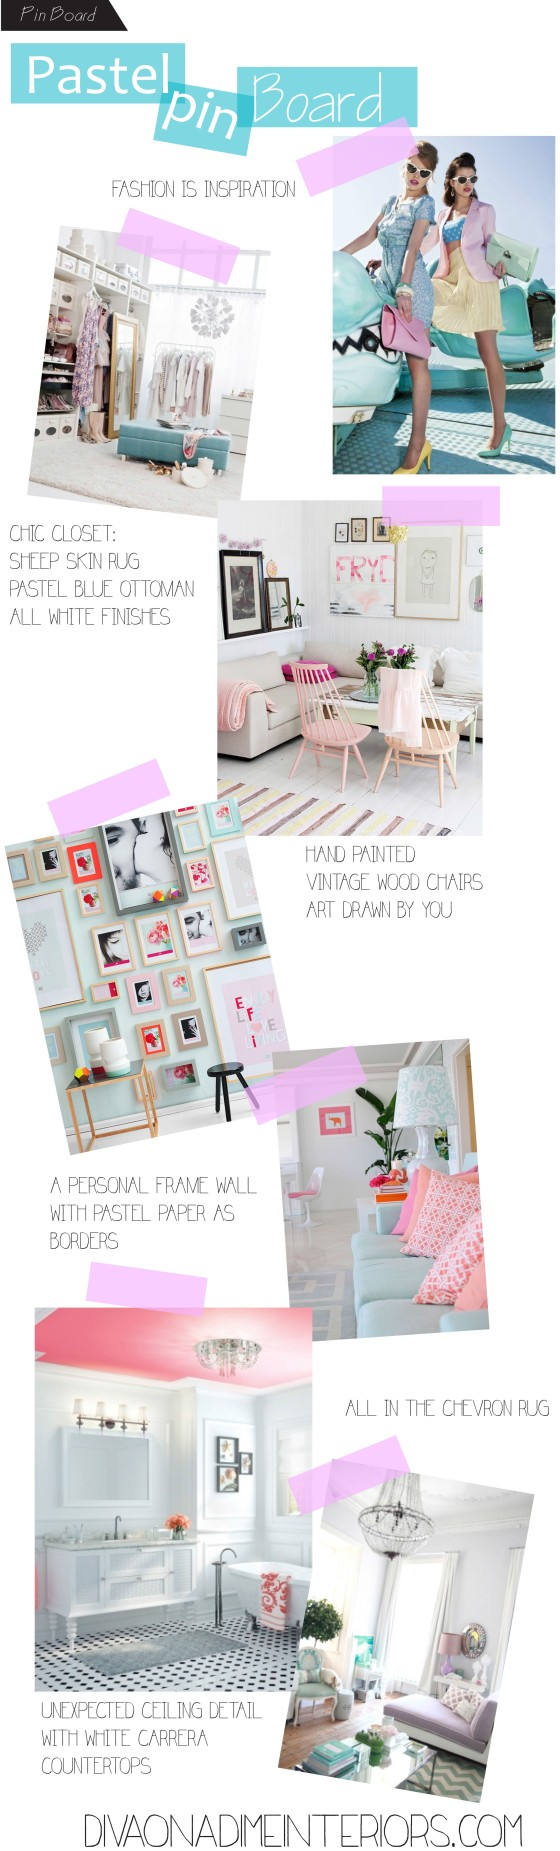 diva on a dime interiors PASTEL PIN BOARD